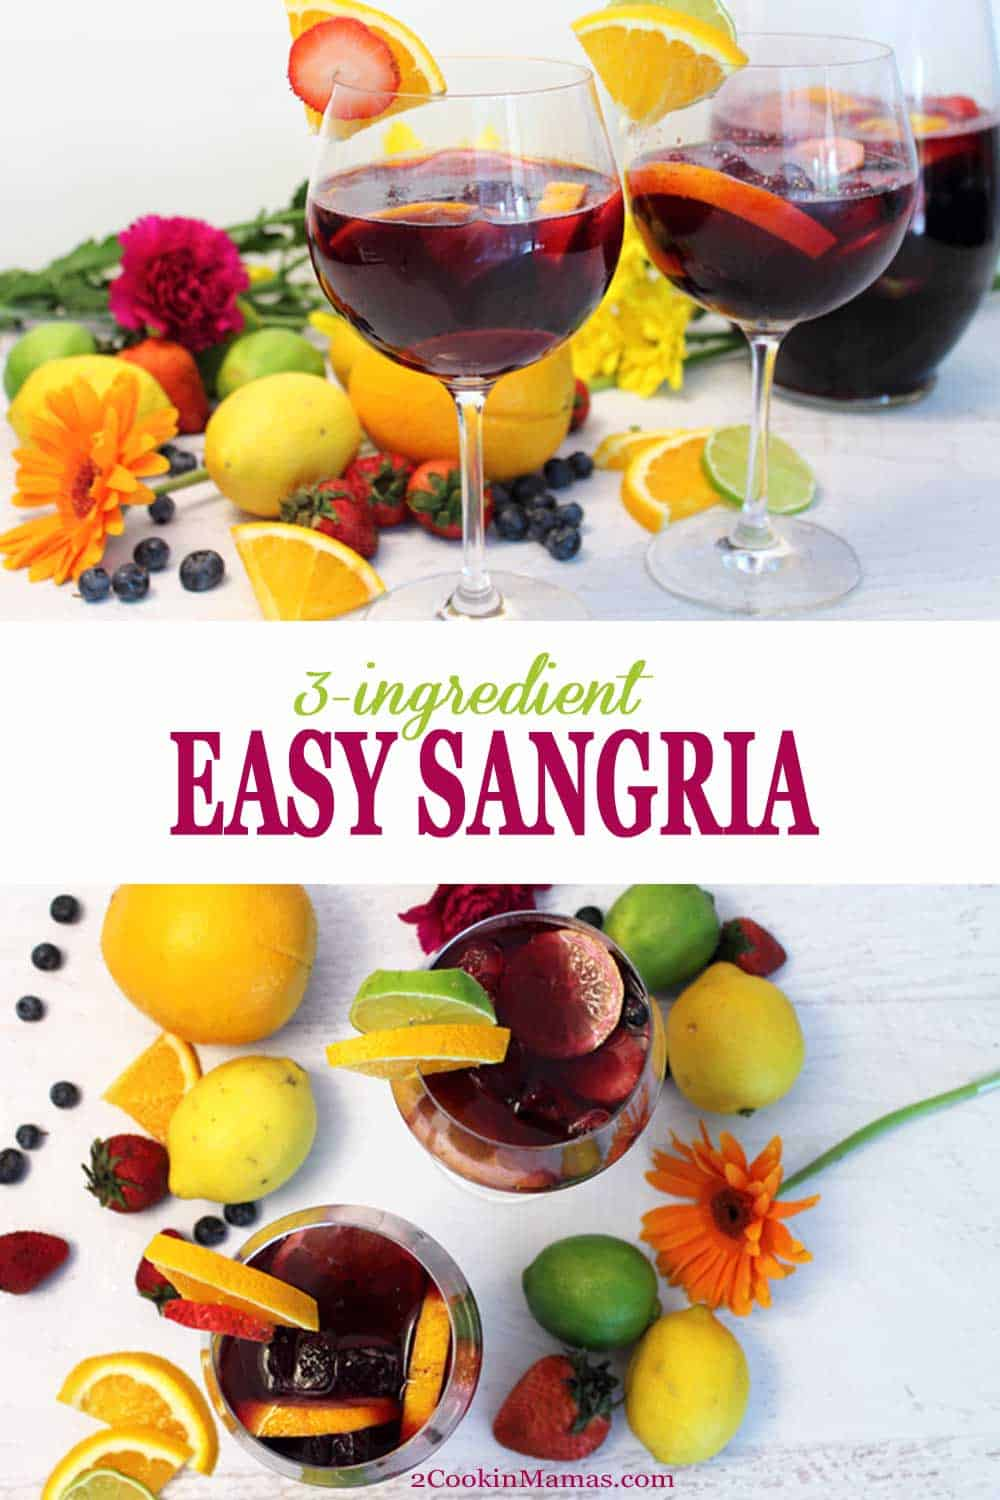 3 ingredient sangria photo of filled glasses with garnishes of fruit